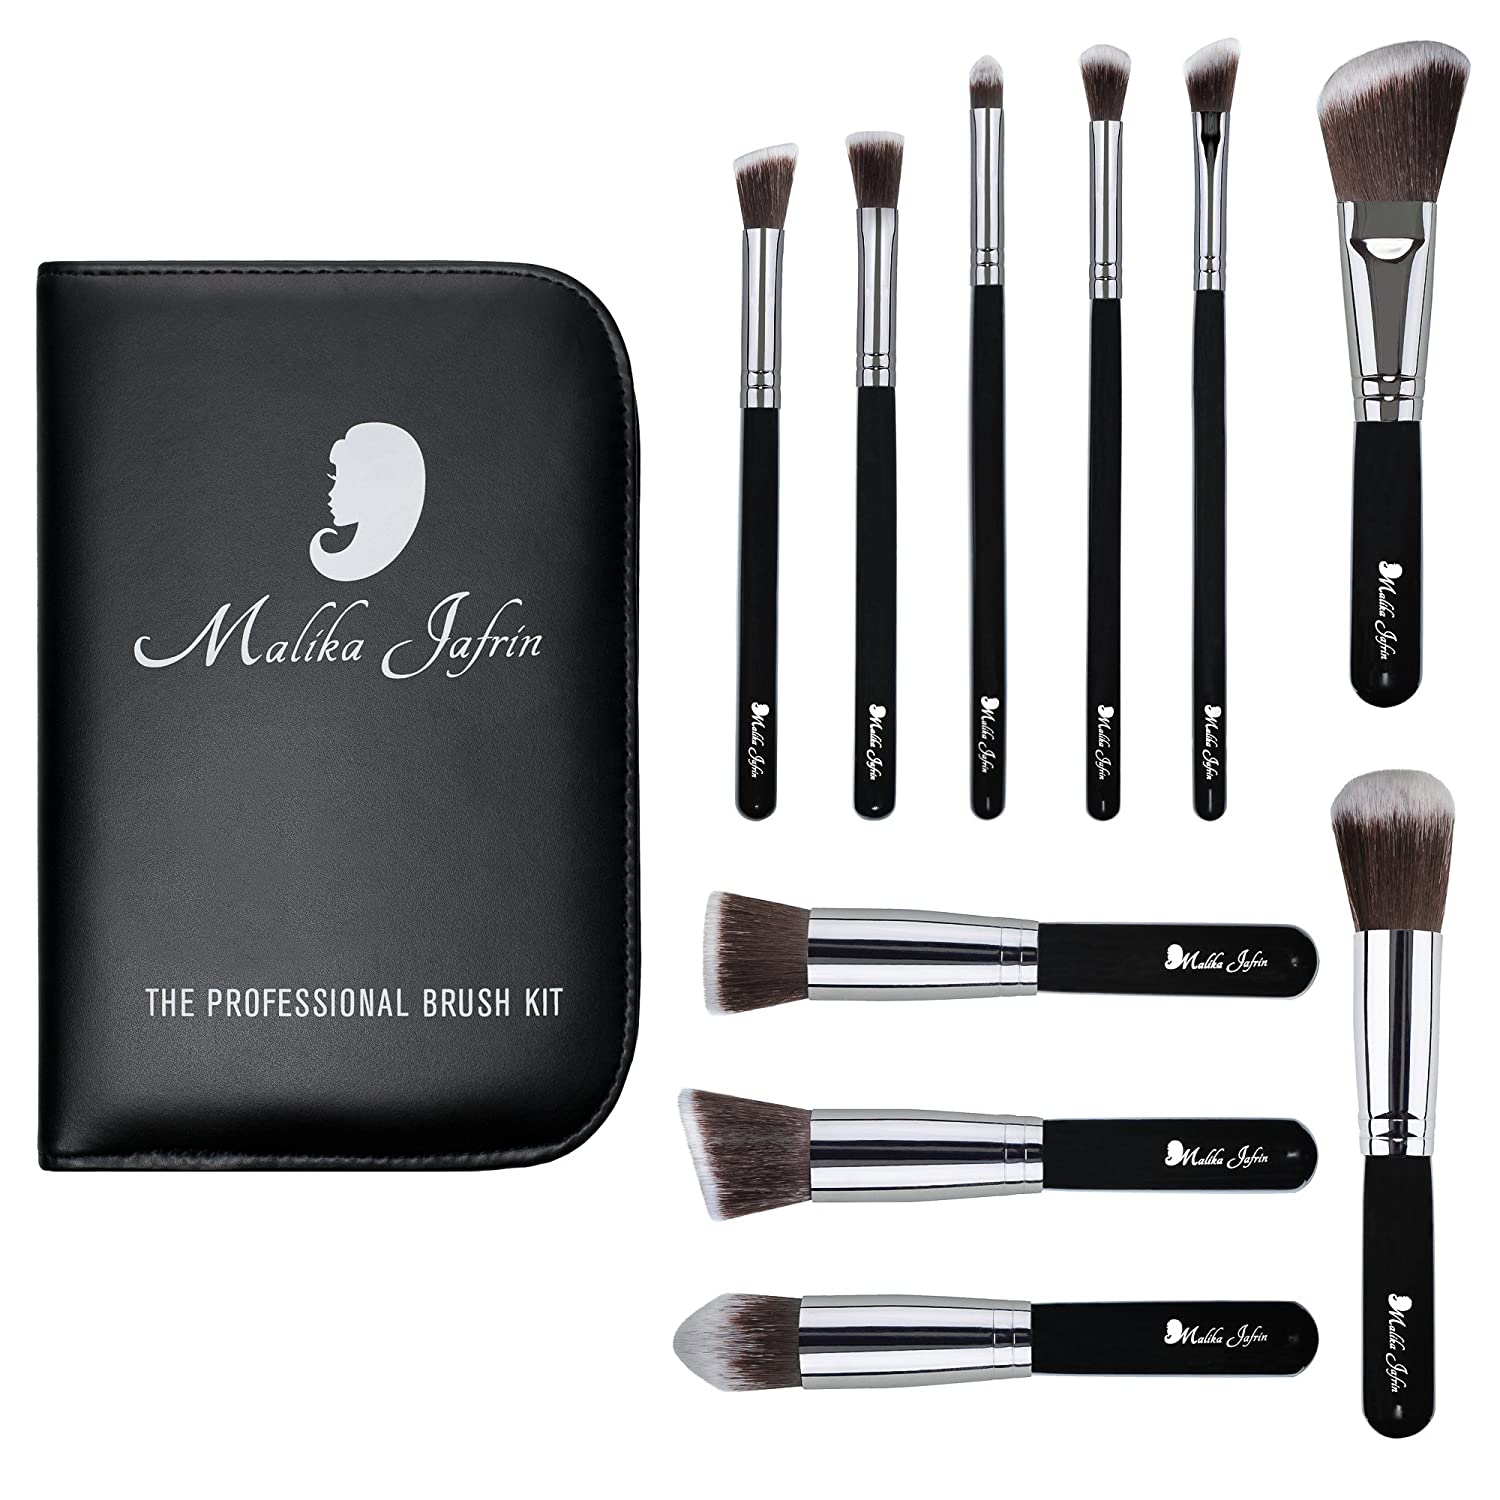 Malika Jafrin, Makeup Brush Set, Premium 10 Piece Professional Kabuki Kit for Your Cosmetic Needs (Face & Eye), Brushes for Foundation (Cream, Powder, & Mineral), Blush, Concealer, Bronzer & More KS 10